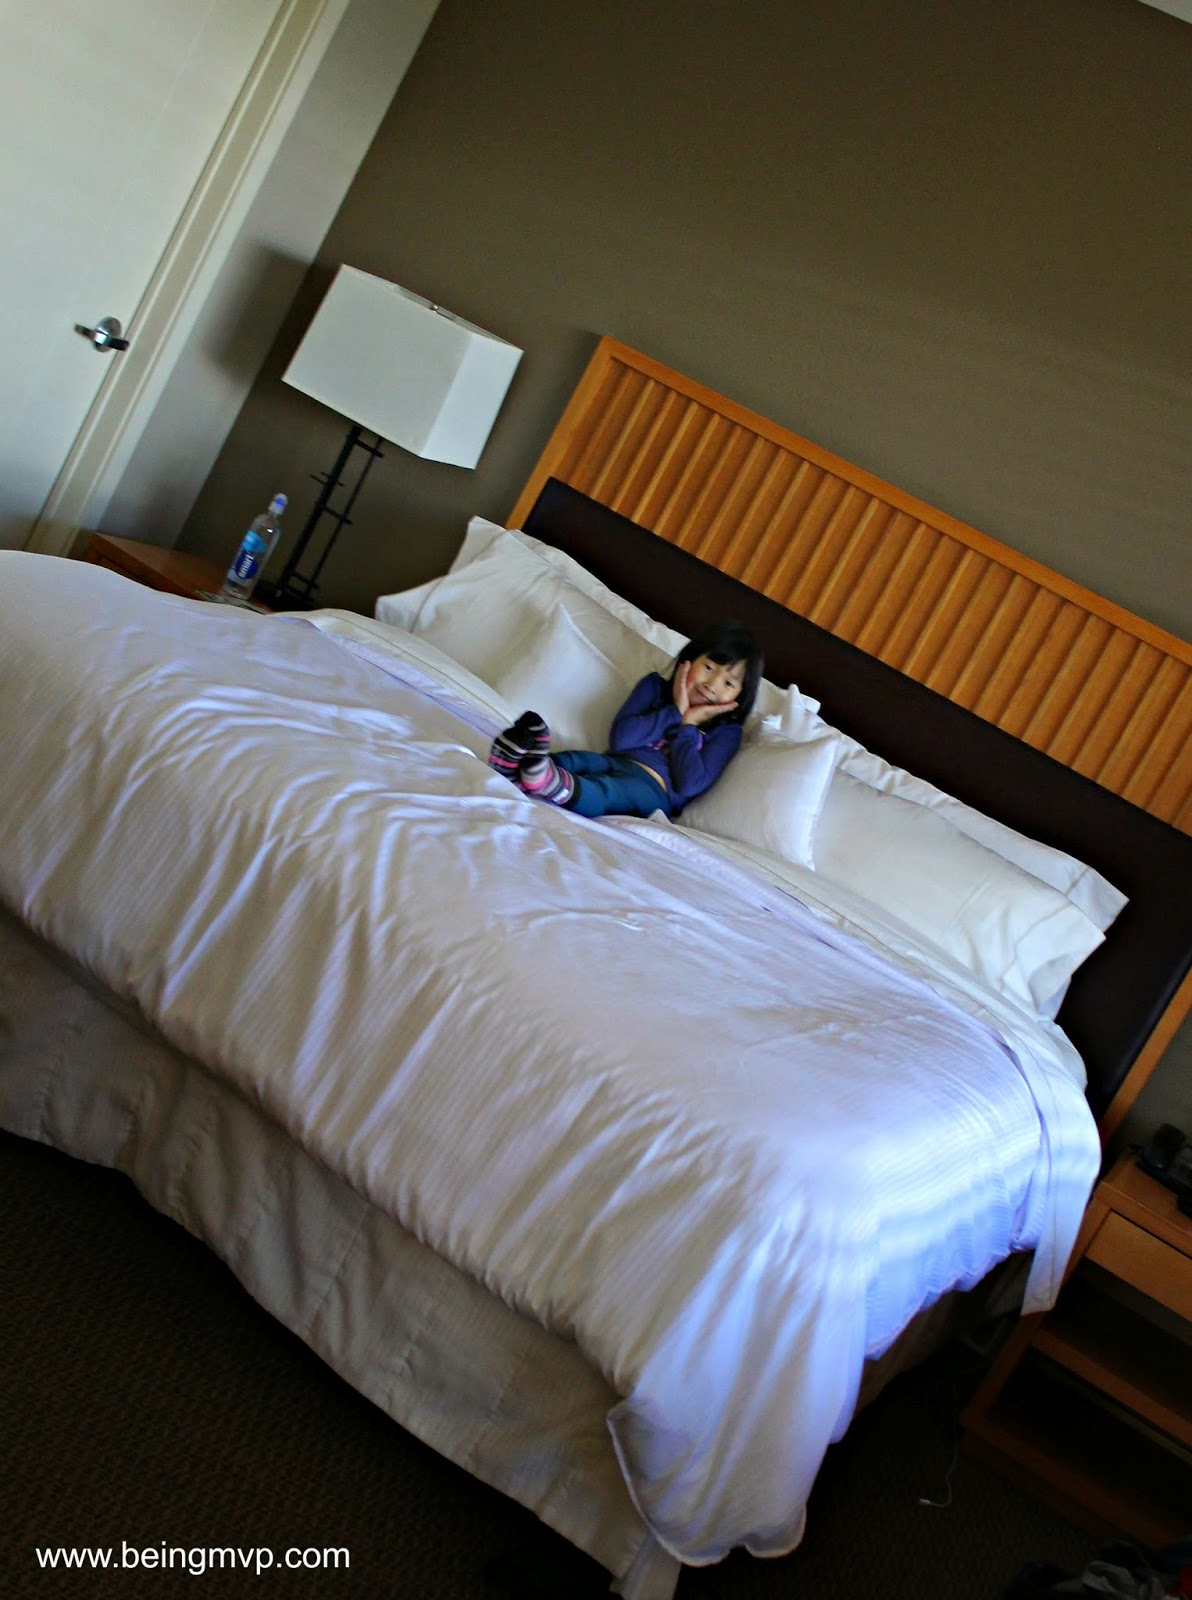 the resort in immediately a pillow being extra that pillows kenzie fluffy sweet for heavenly top snoozing family mammoth dreams made on bed of arrival possible little my westin mvp friendly loads upon monache gal